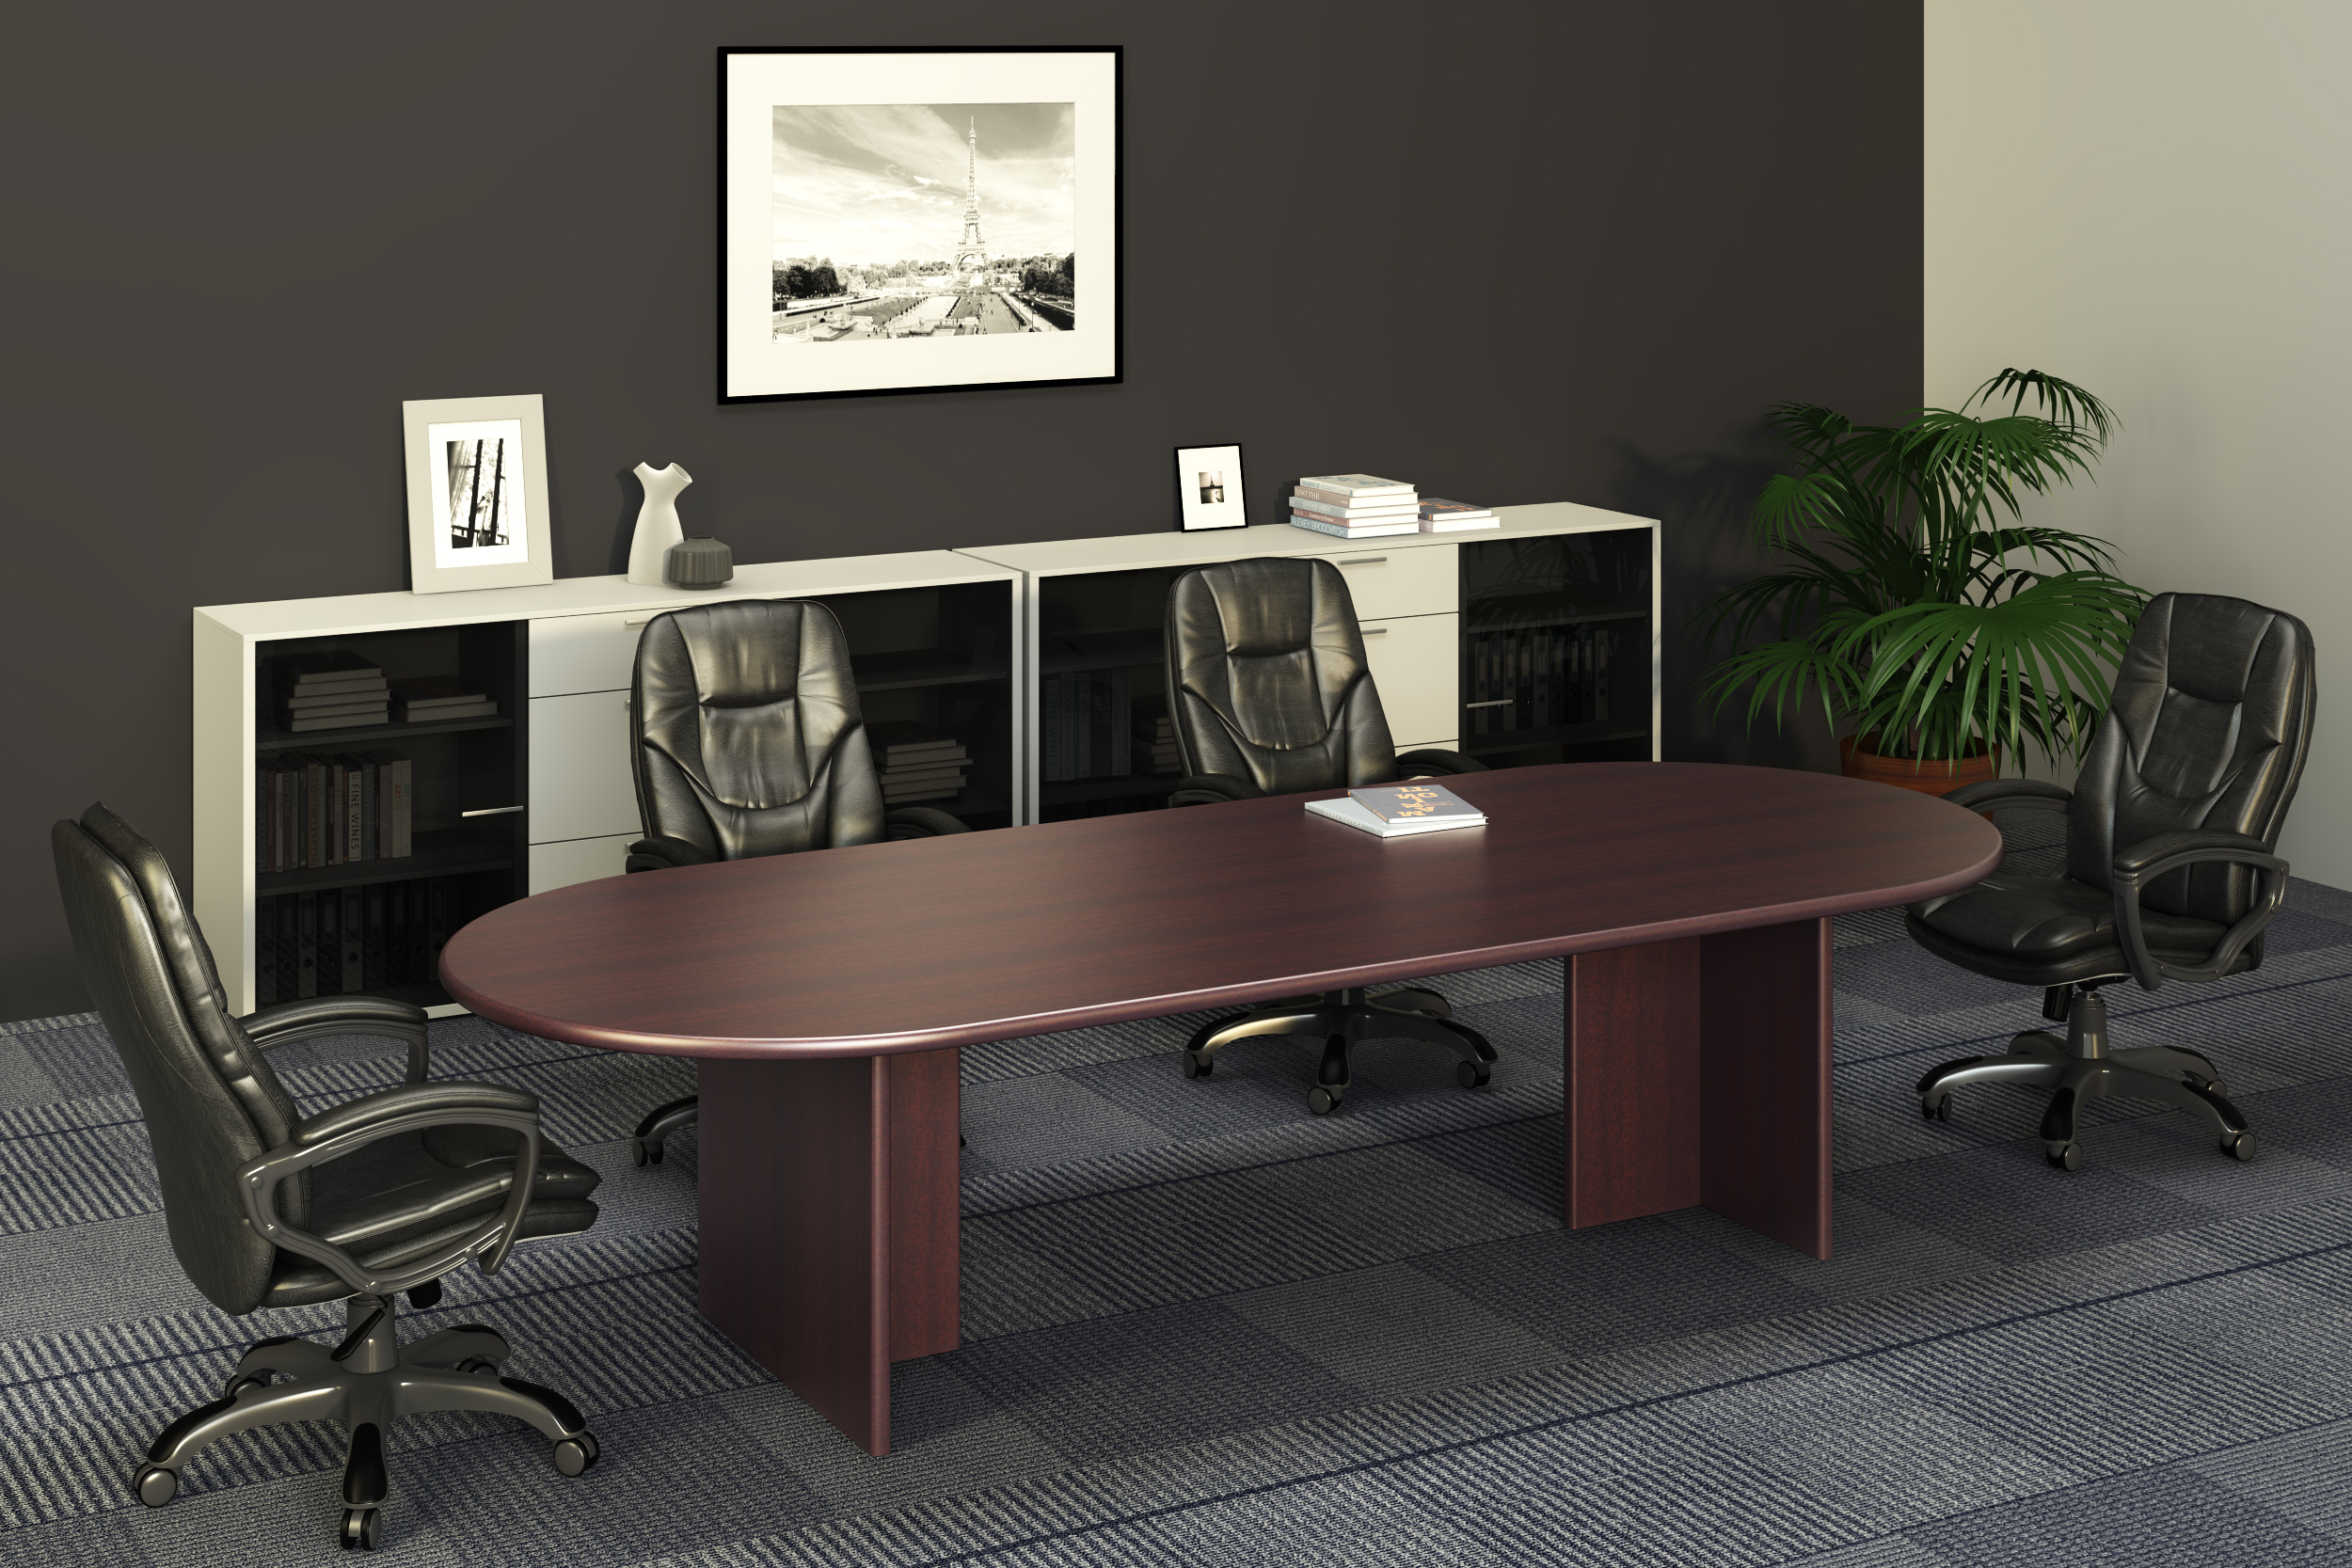 LDF 3300 Series Table